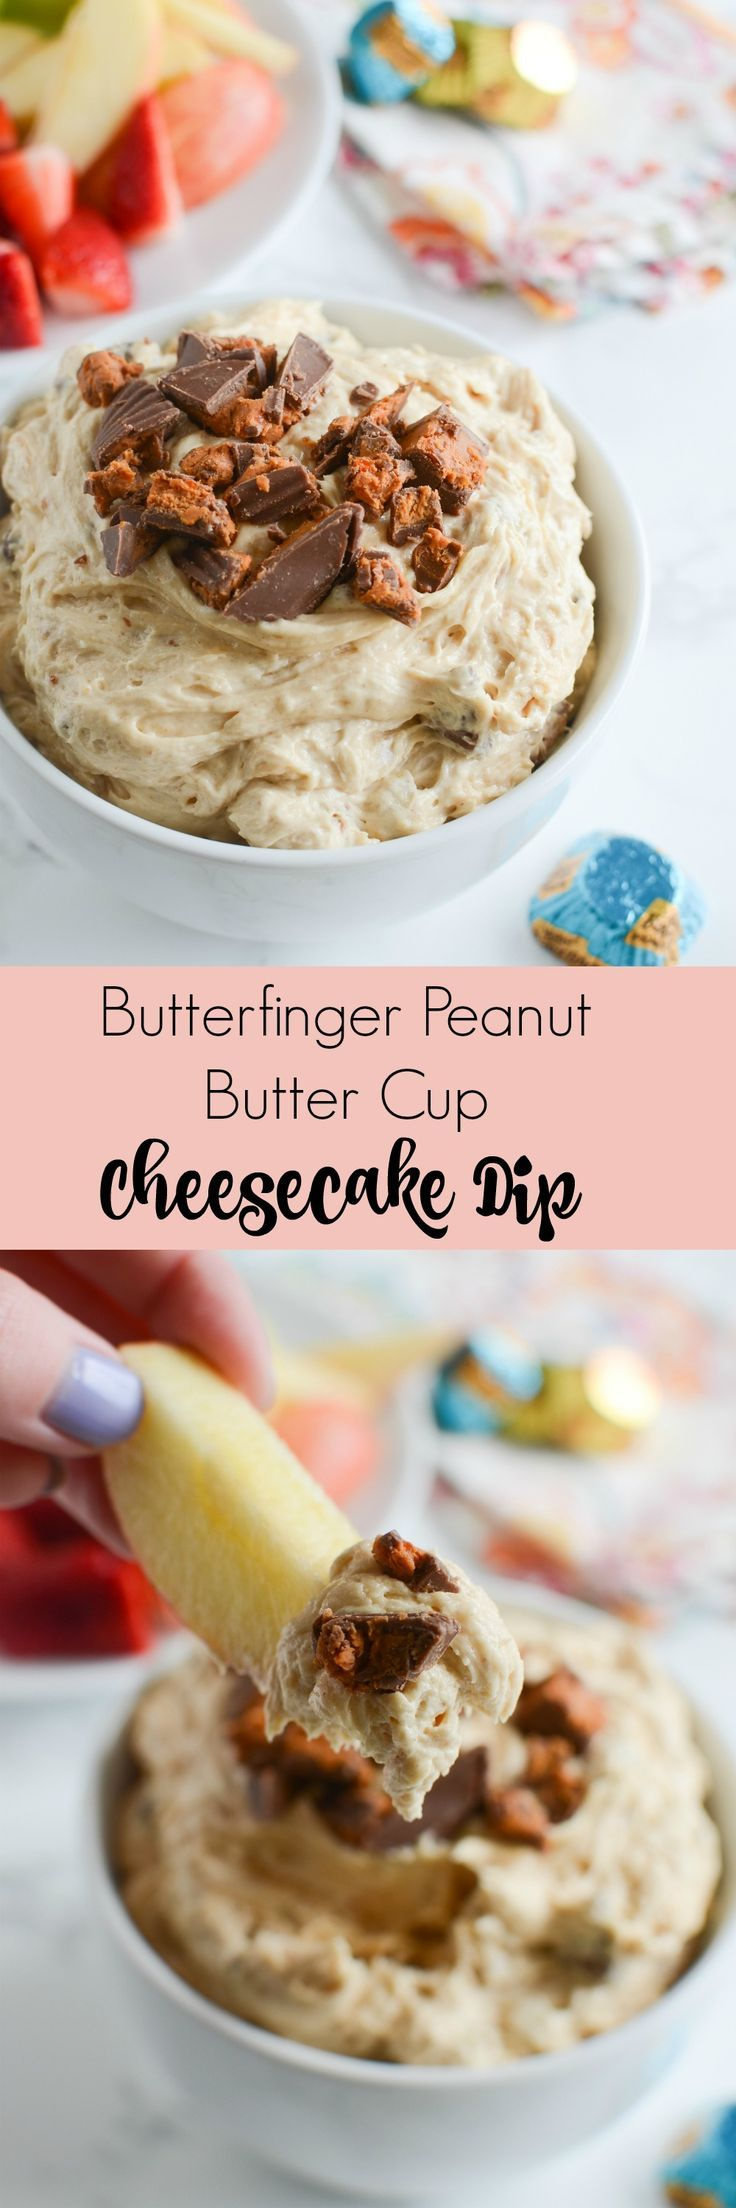 Butterfinger Peanut Butter Cup Cheesecake Dip - delicious dessert dip made with Butterfinger Peanut Butter Cups! Serve with fruit, cookies, pretzels, and more!